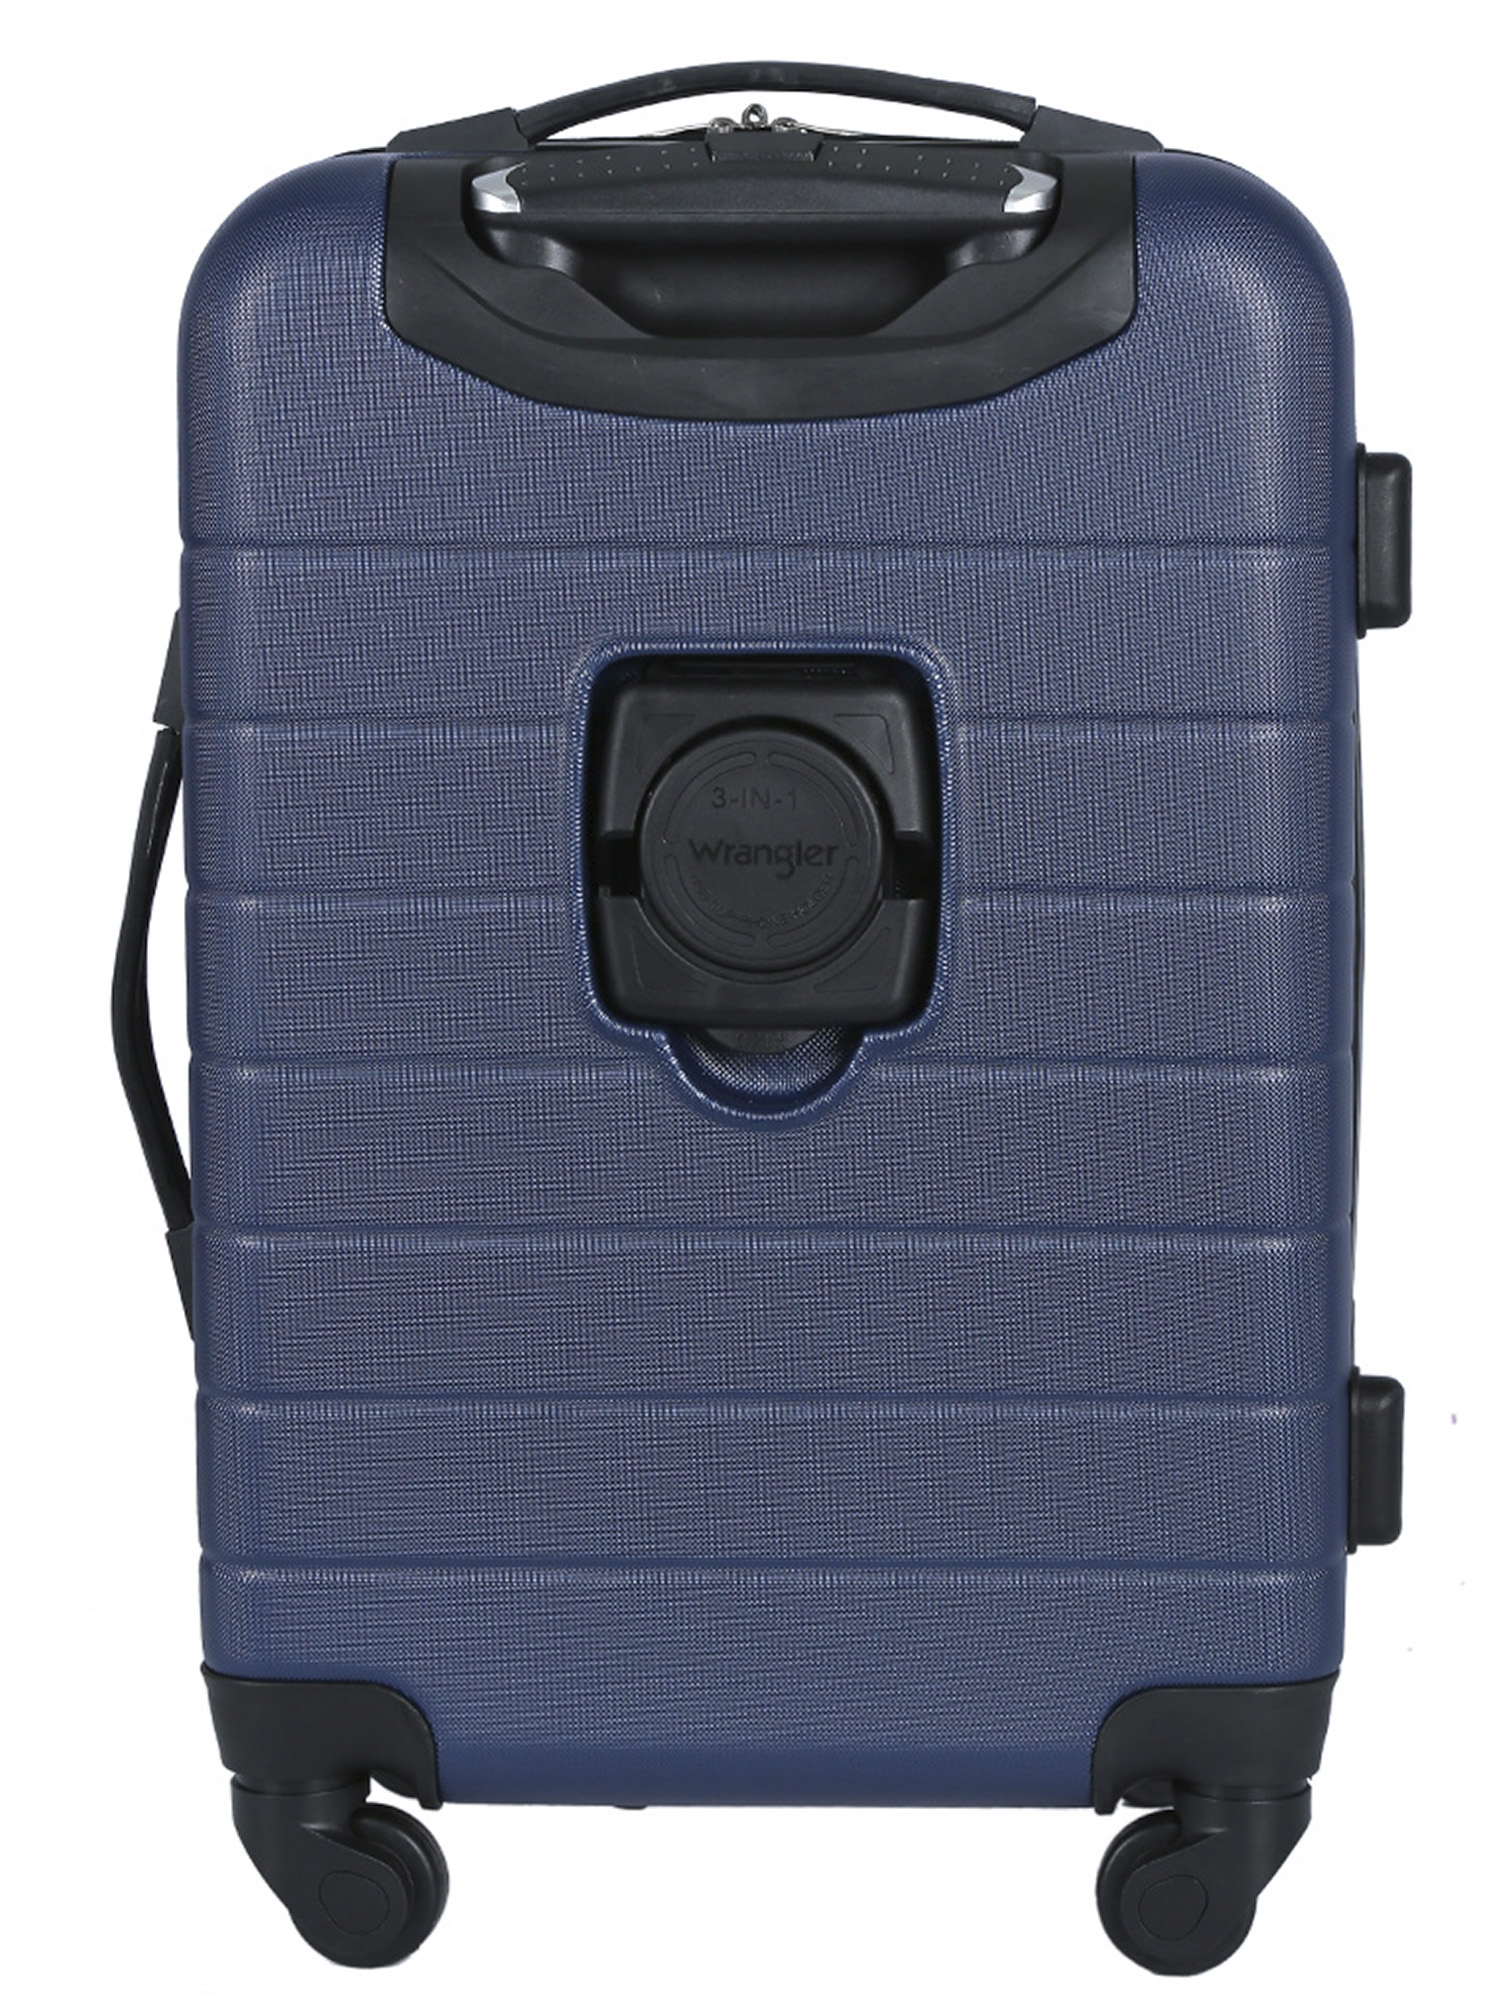 d36086f0a WRANGLER - 20 Expandable Spinner Rolling Carry-on w/ USB Port - Walmart.com